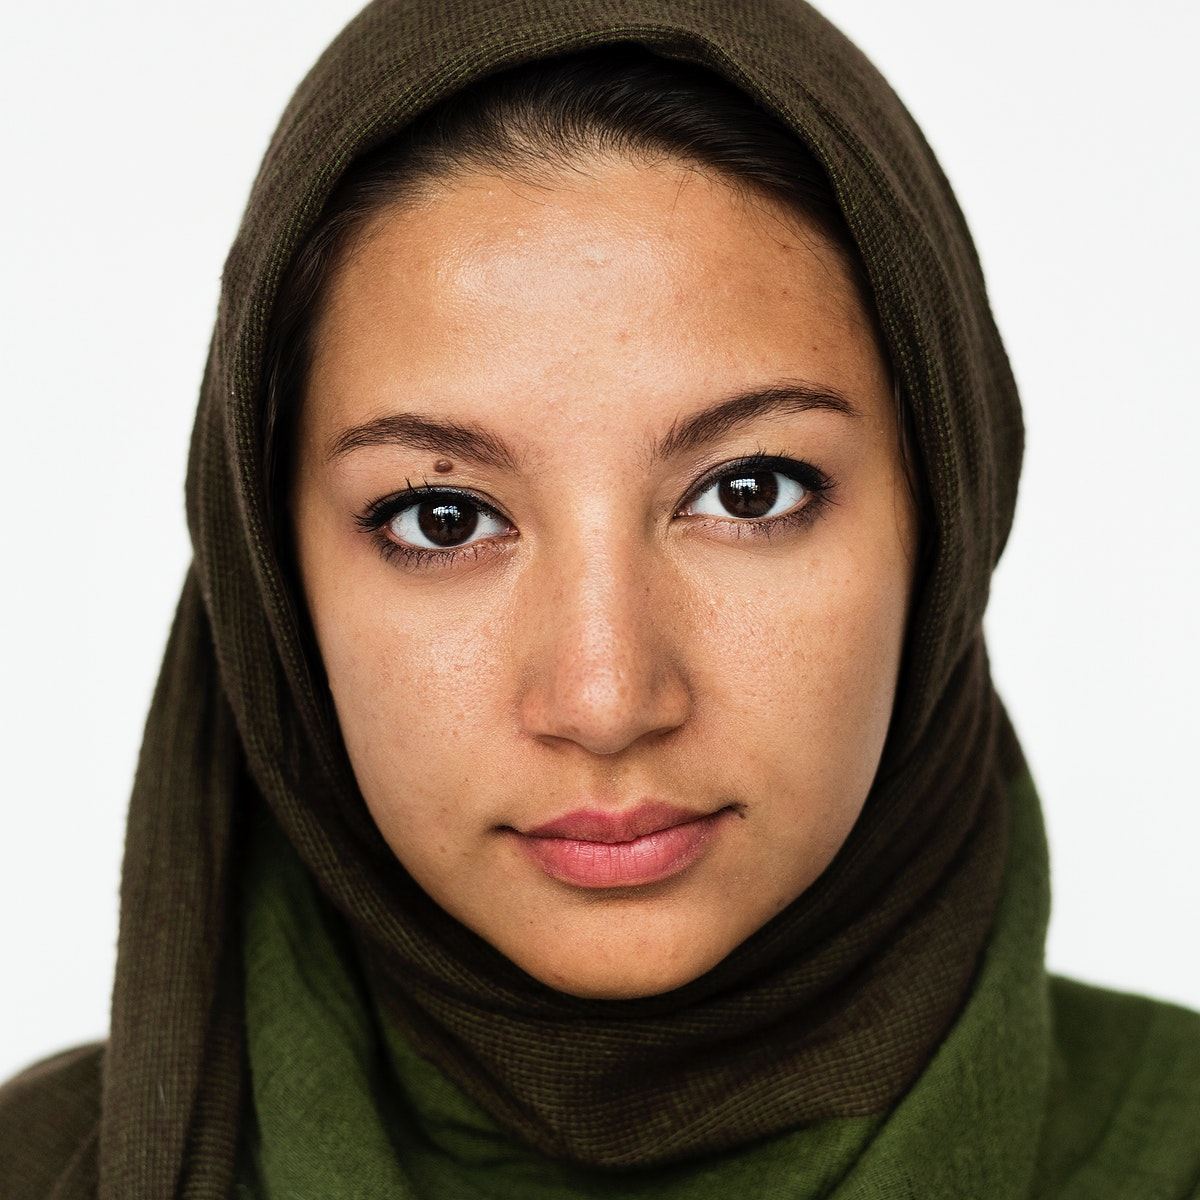 Worldface-Iranian woman in a white background